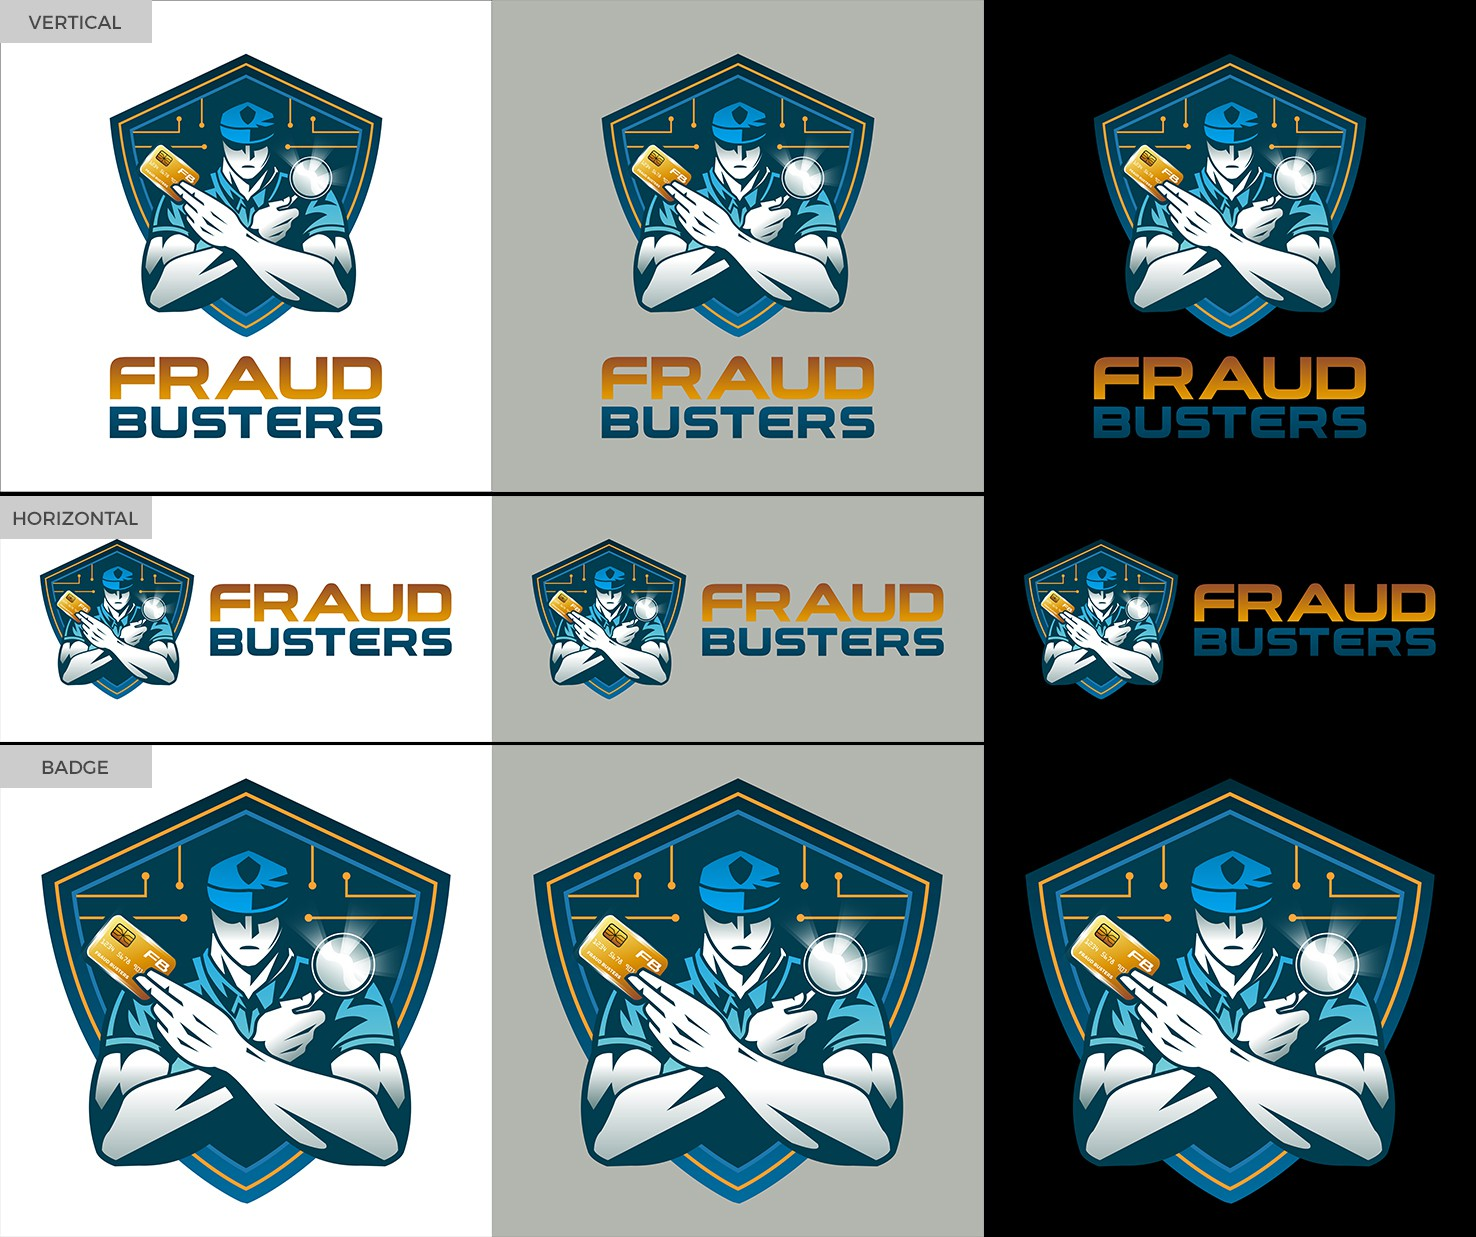 FraudBusters needs a powerful logo to combat everyday credit card fraud.